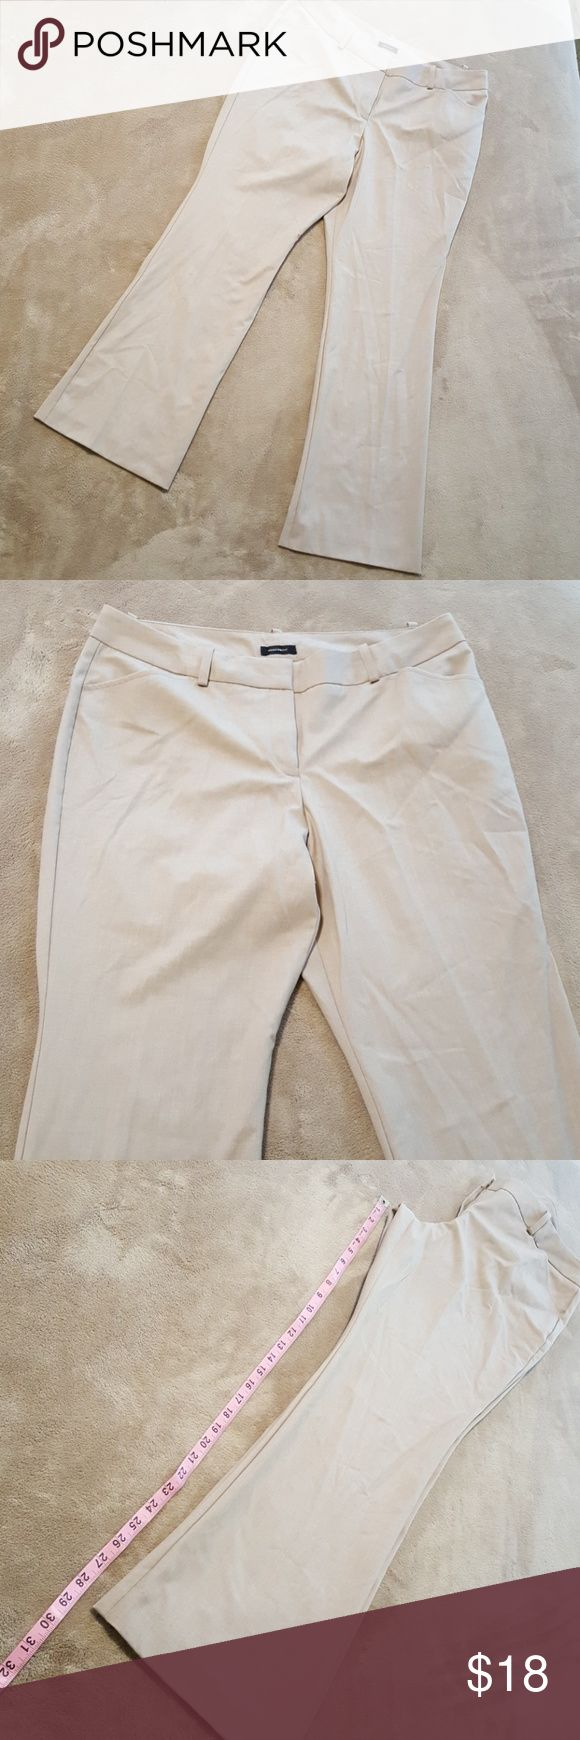 """Worthington Pants/Slacks. """"Modern Fit"""". Sz 12P. Nice slacks/dress pants by Worthington. """"Modern Fit"""". Size 12P. Beige/Light Tan color. Very good condition. No holes, stains, pilling, pulls. Not lined. Can be machine washed so easy to care for. Only """"flaw"""" is that they're wrinkled from being in a too full closet. Sorry! Great with nice blouses, sweaters, blazers, dusters. Comfortable fit. Approx measurements in pics. 63% Polyester, 34% Rayon, 3% Spadex. Worthington Pants Trousers"""